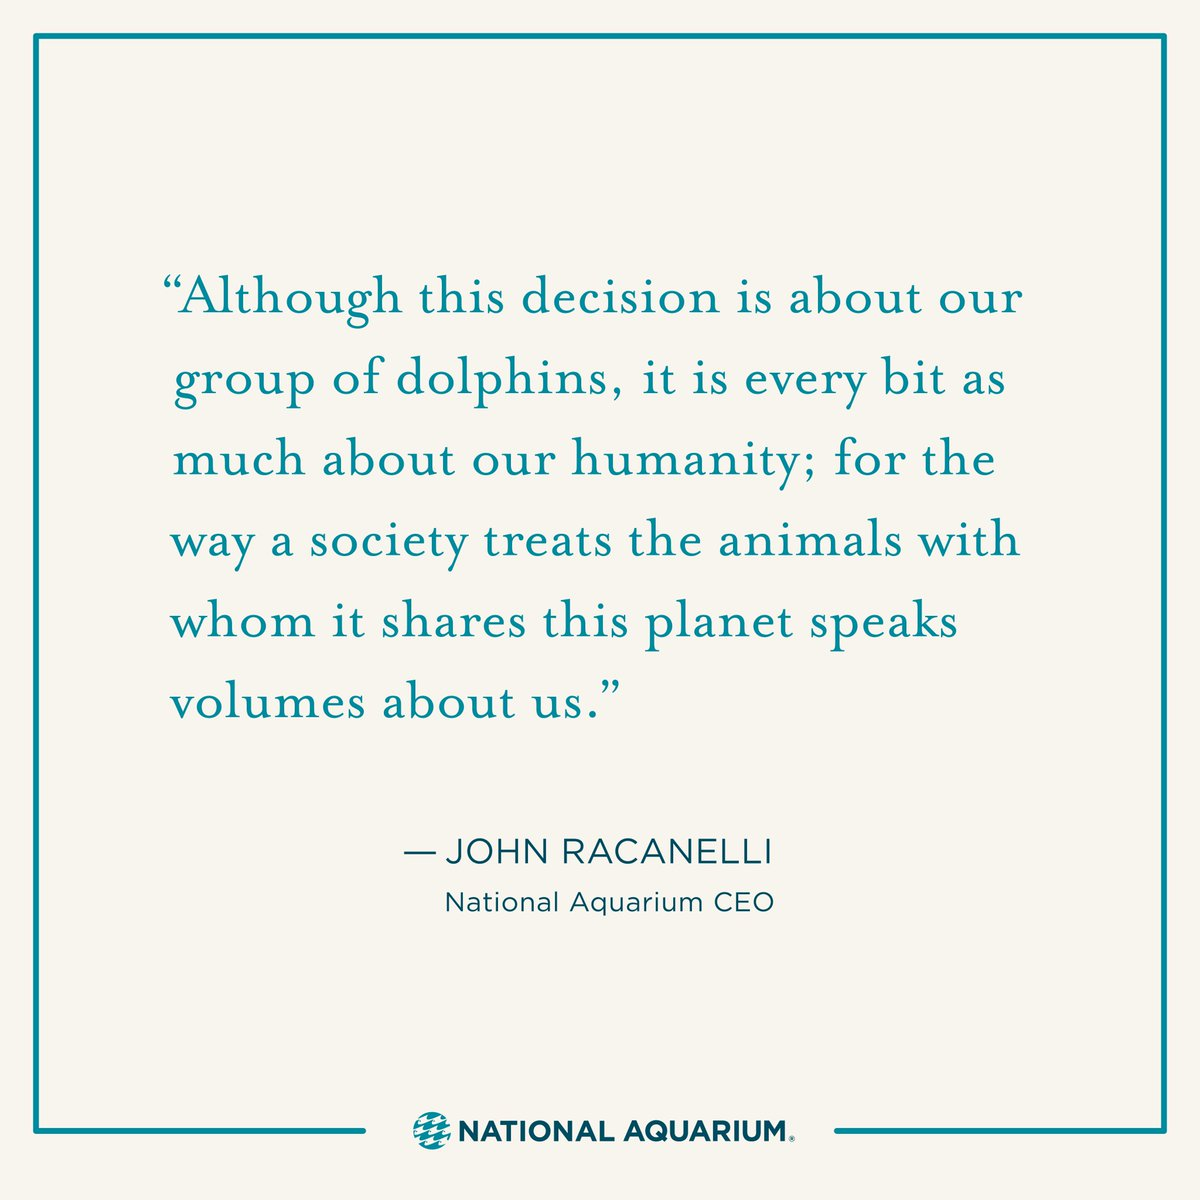 Today, we're announcing our plans to create a new way for dolphins to thrive in human care. https://t.co/15b1Qk5xYF https://t.co/6h1IcAfpEk